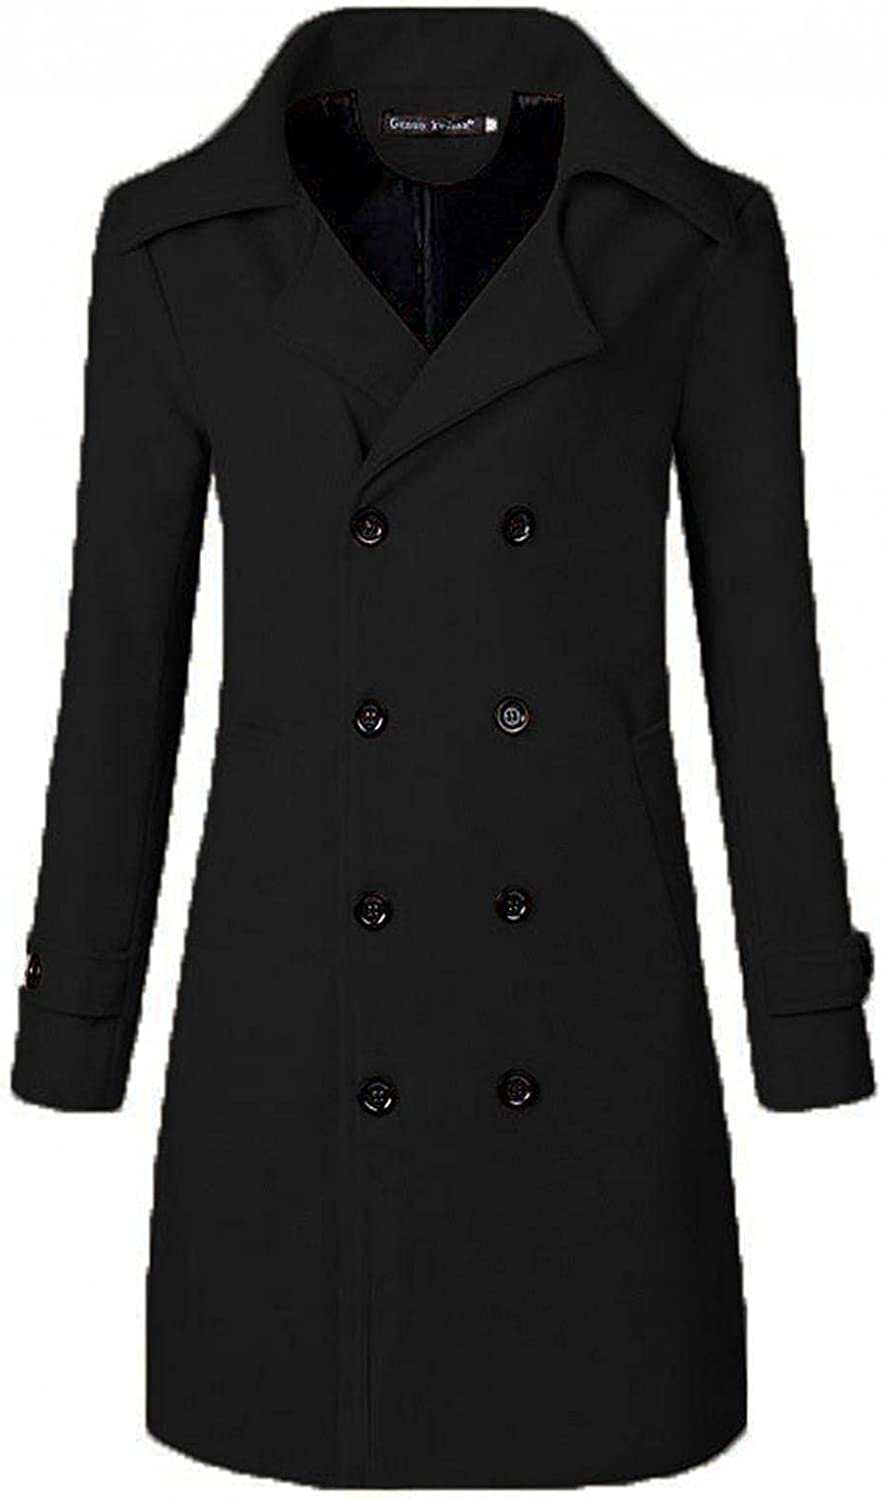 XUNFUN Mens Long Trench Coat Slim Fit Double Breasted Notched Lapel Winter Warm Woolen Blend Pea Coats Business Overcoat